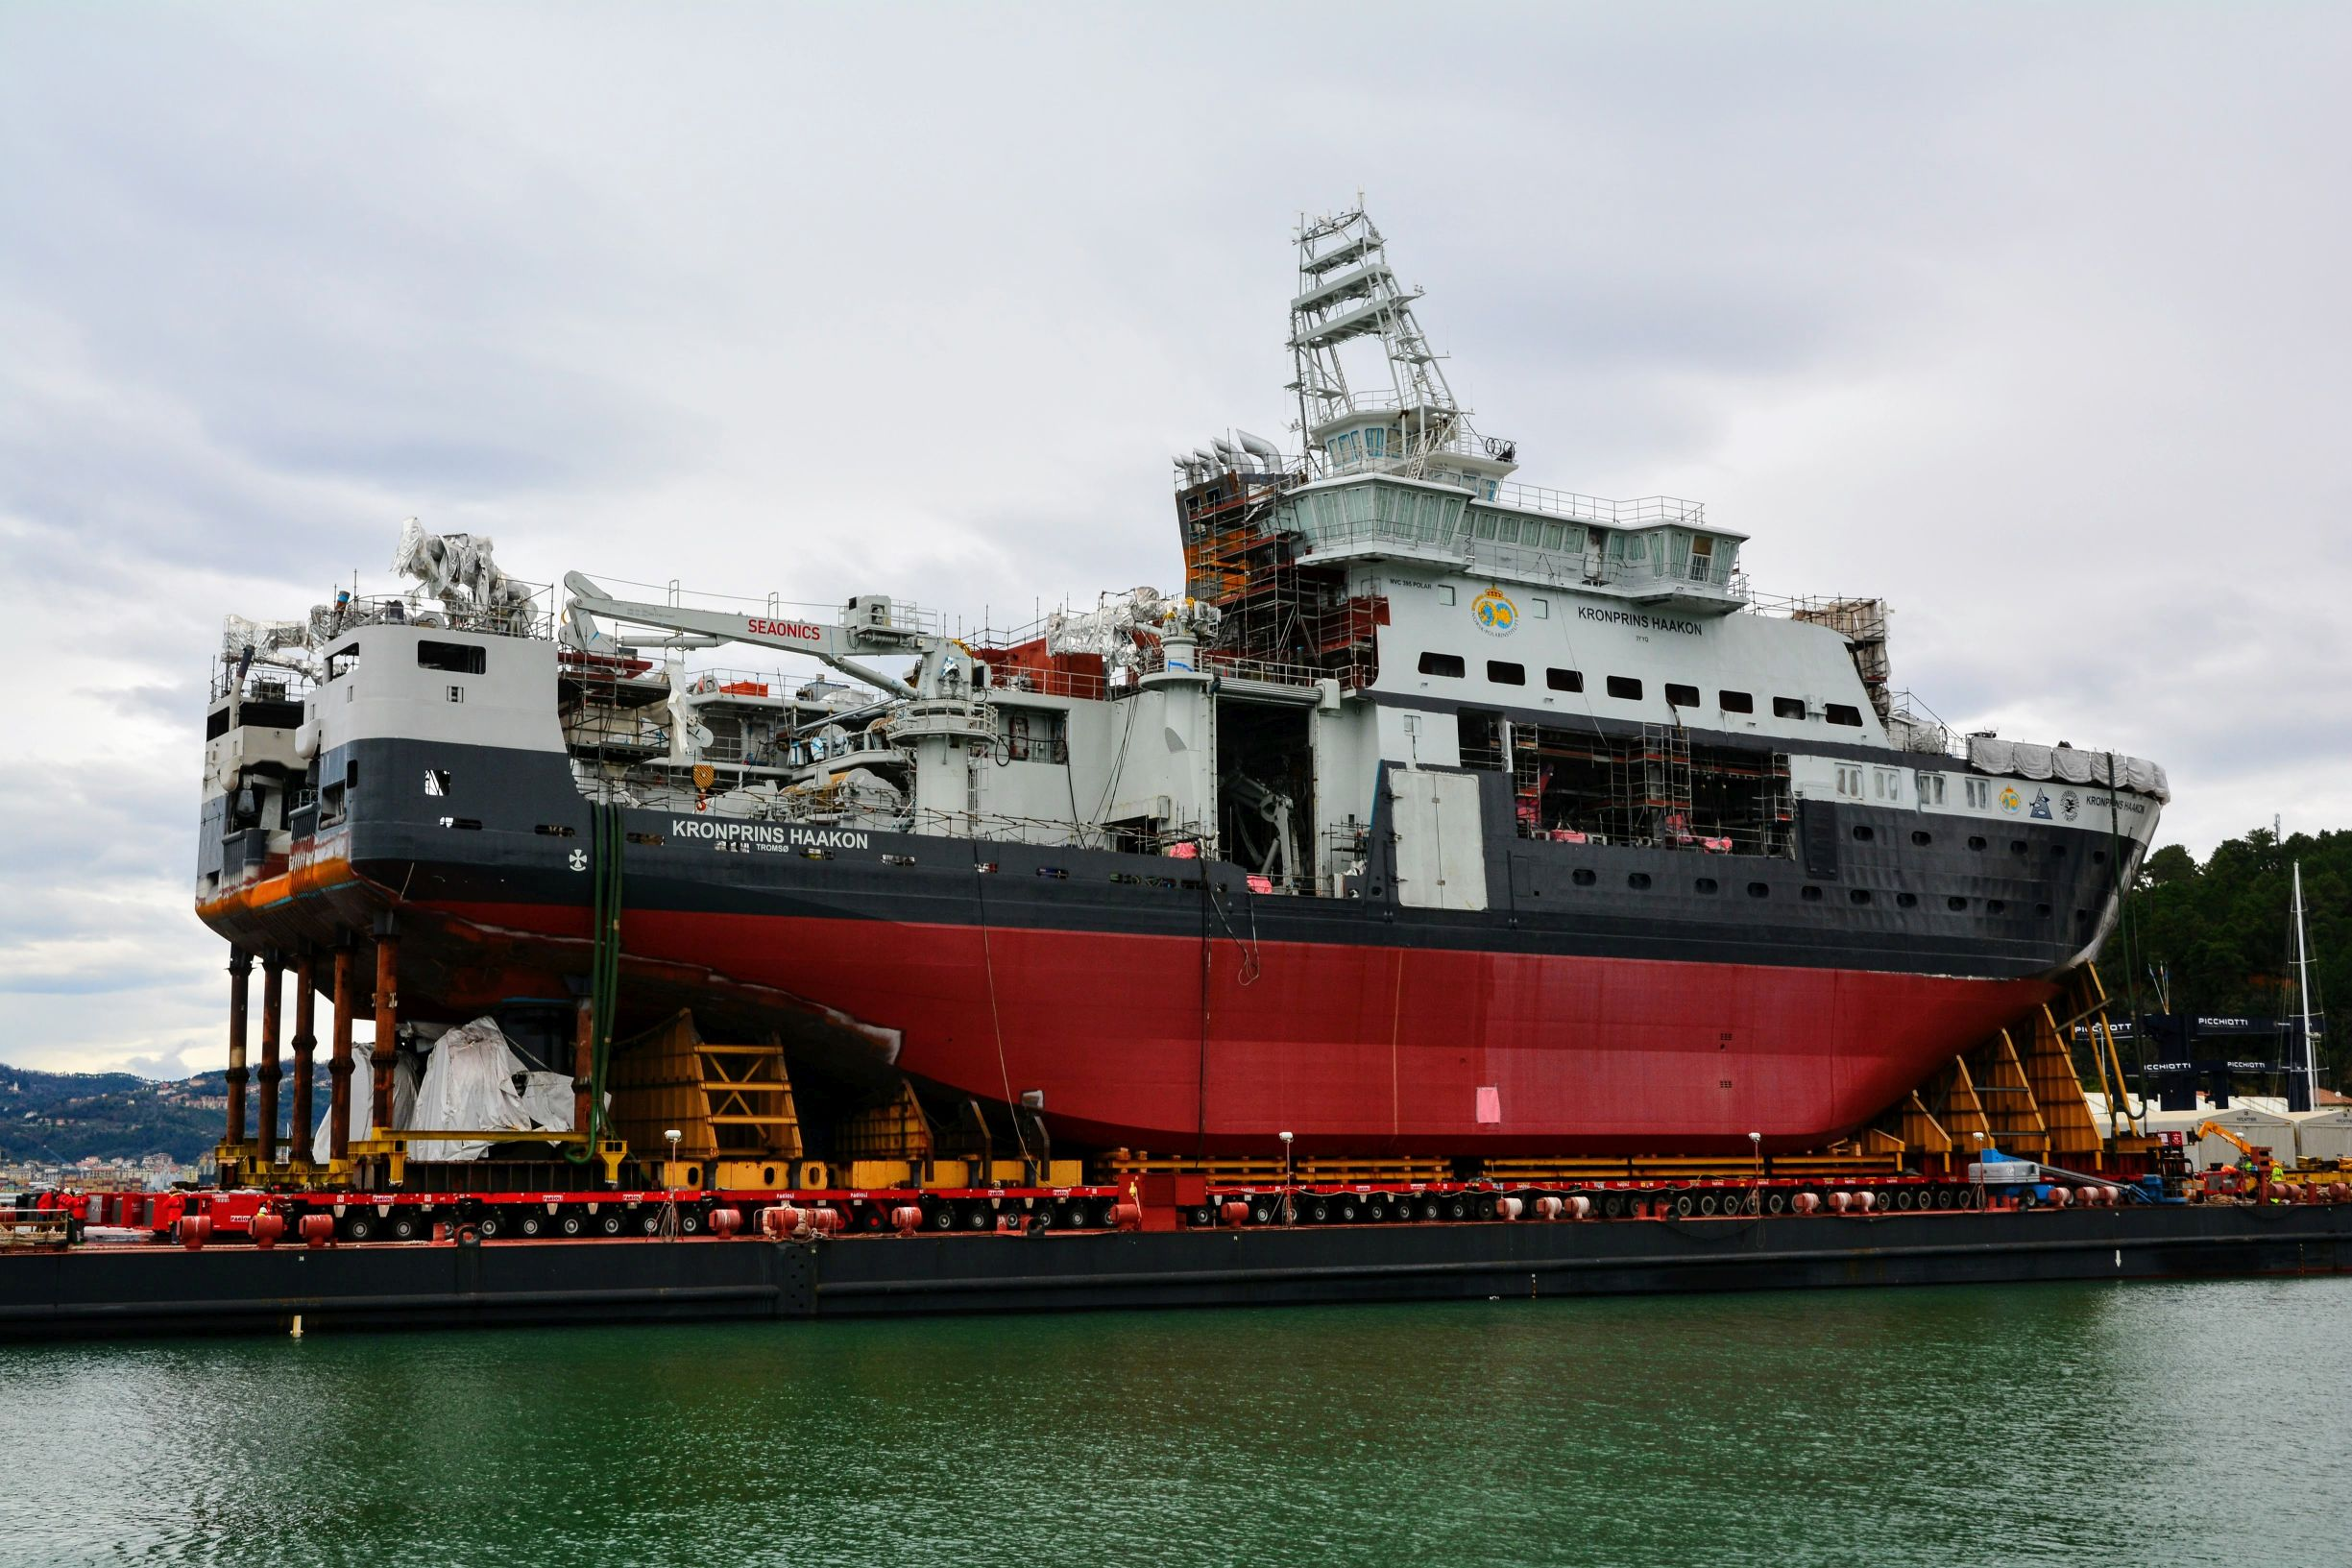 New research vessel for polar operations - RV 'Kronprins Haakon'. Click to enlarge.